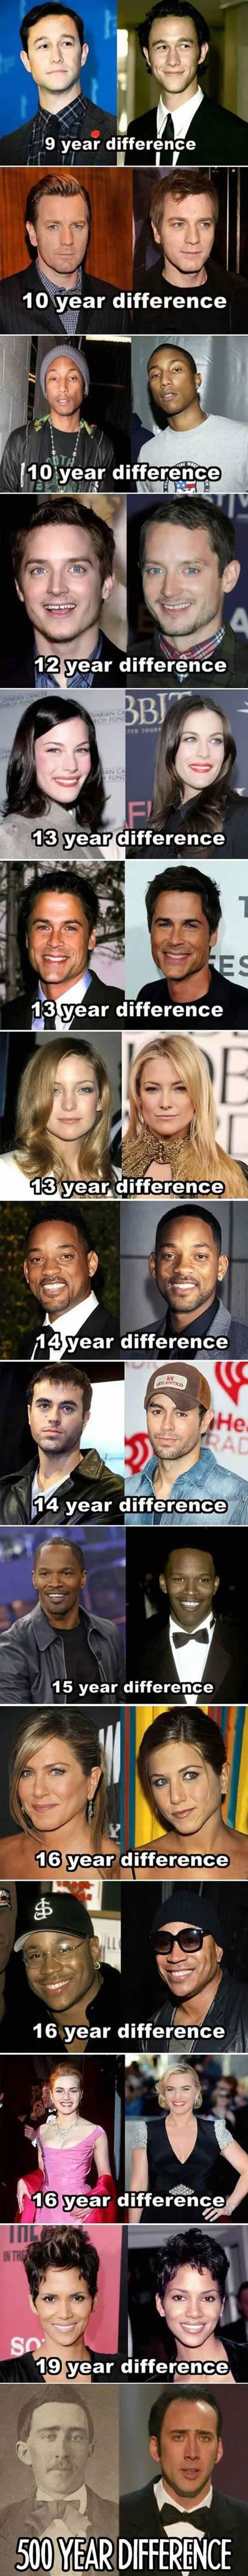 celebs-aging-difference-years